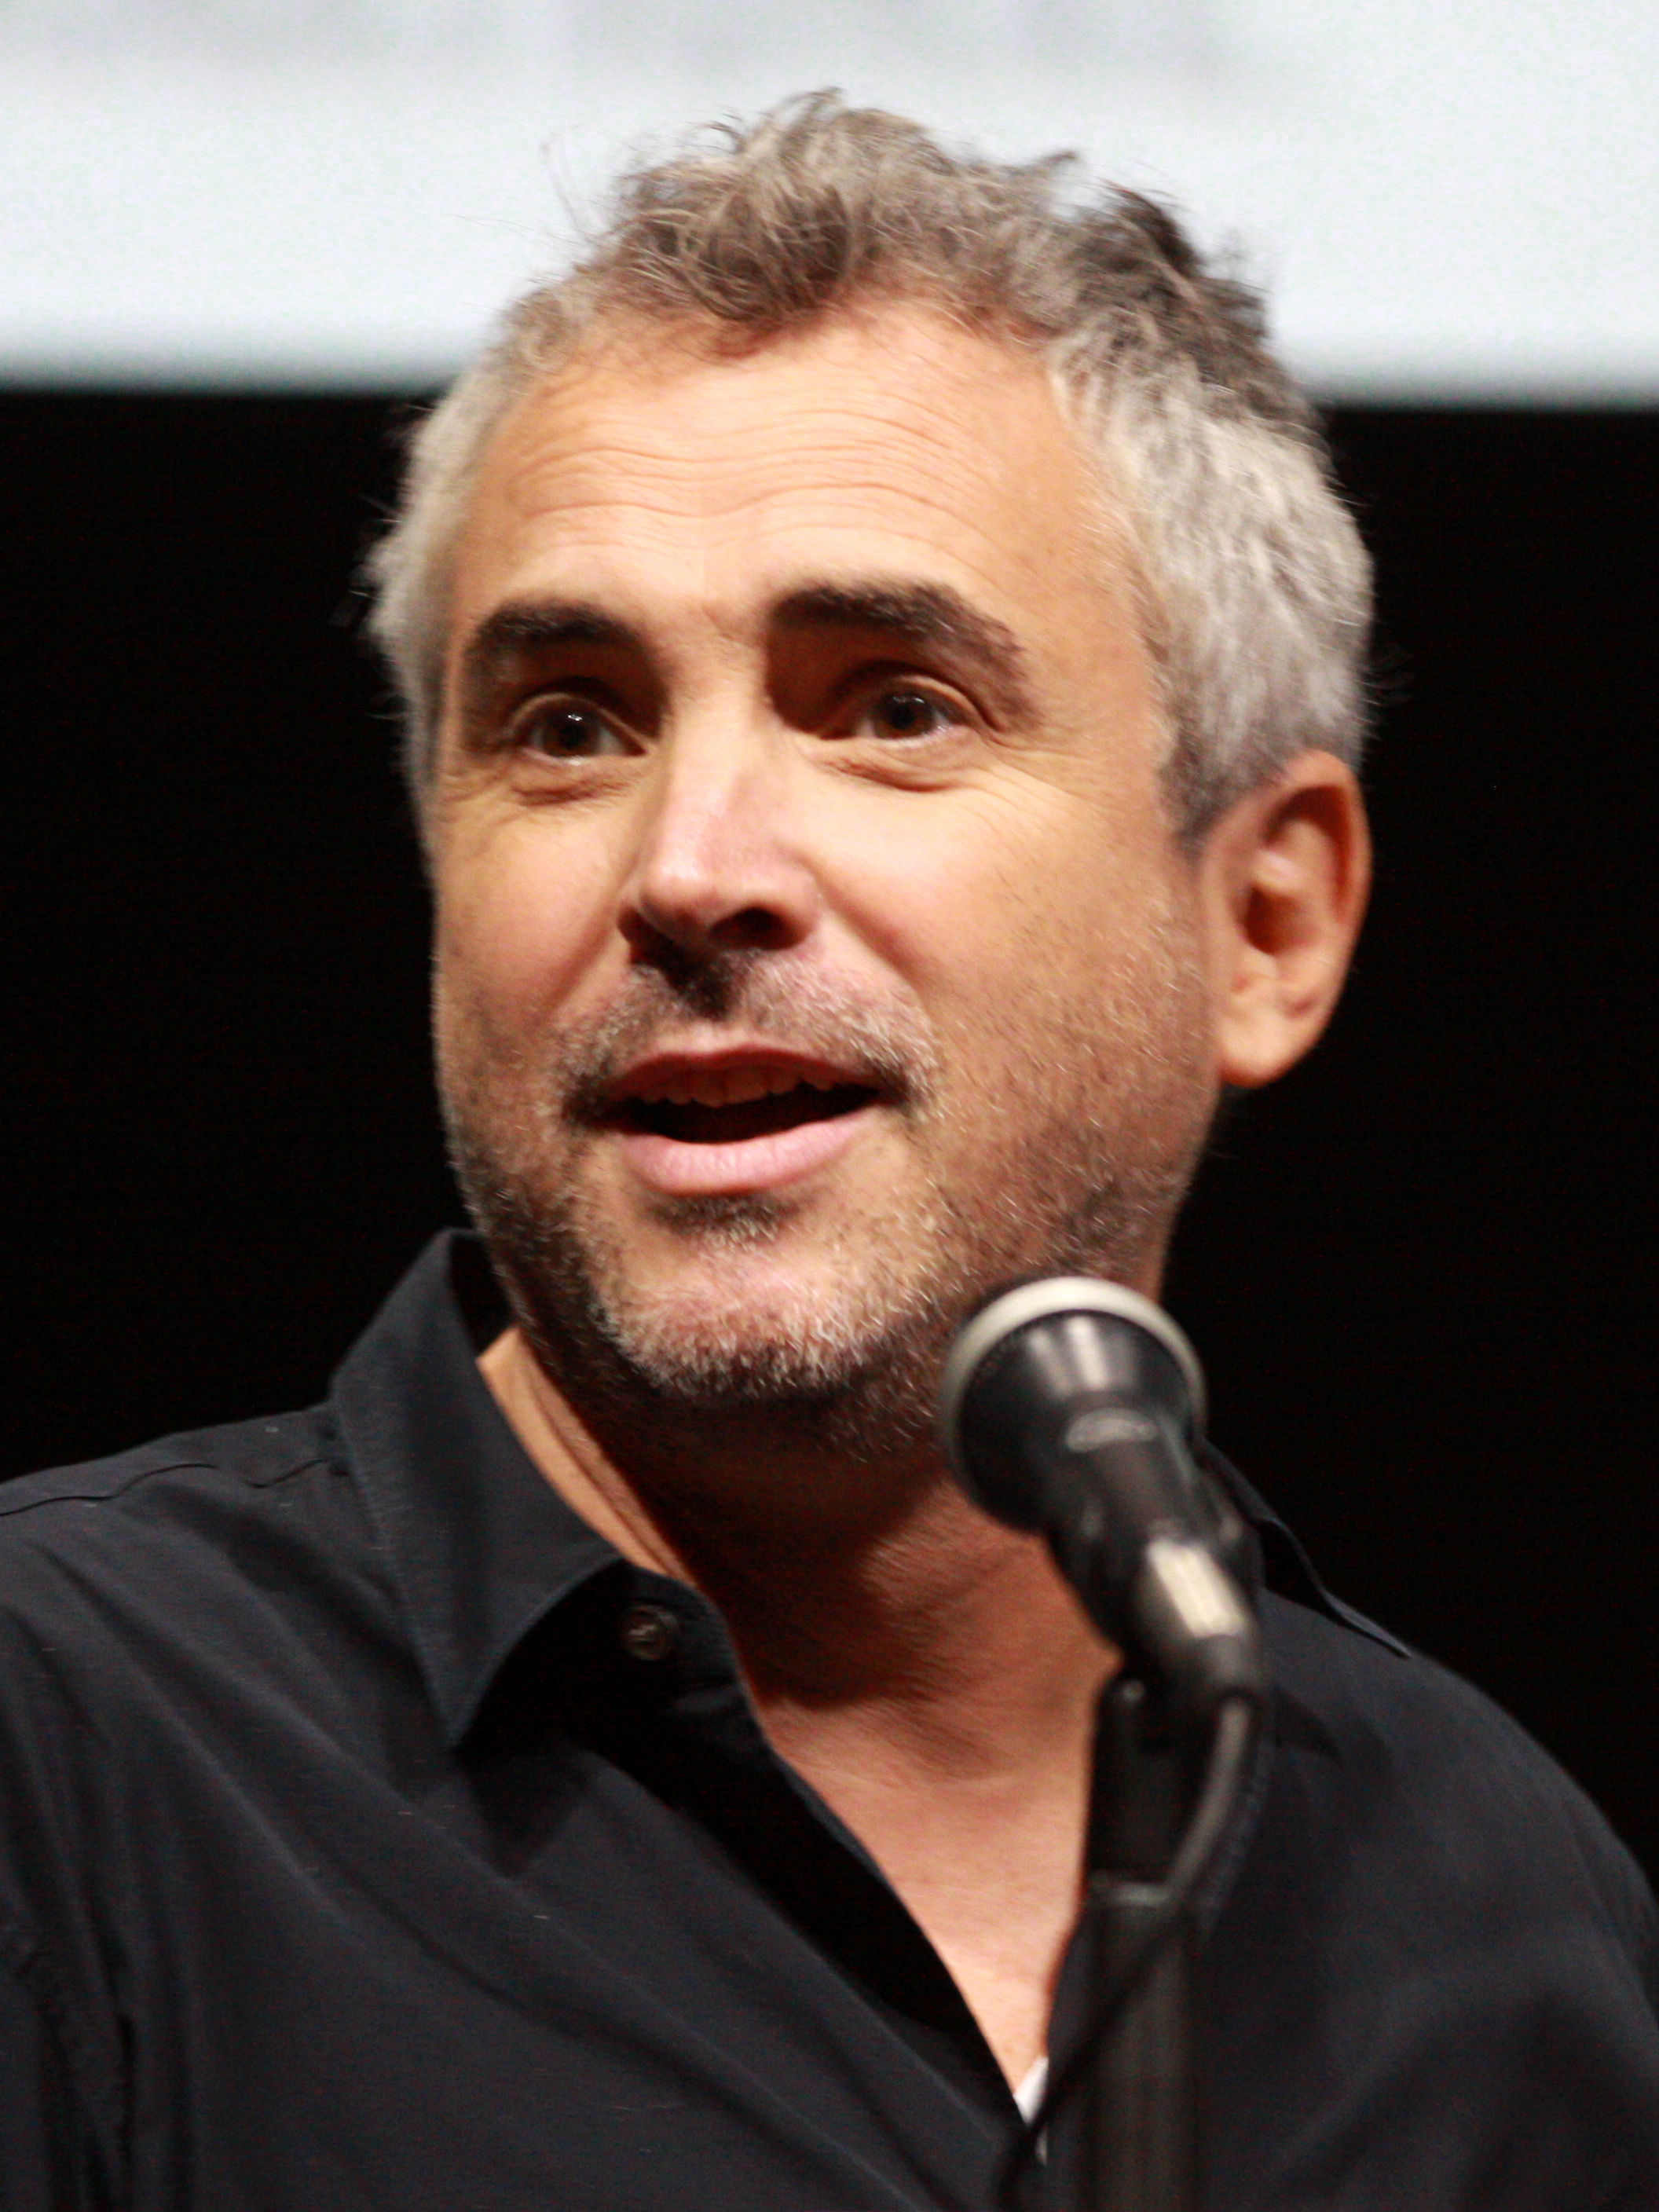 The 56-year old son of father (?) and mother(?) Alfonso Cuarón in 2018 photo. Alfonso Cuarón earned a unknown million dollar salary - leaving the net worth at 20 million in 2018